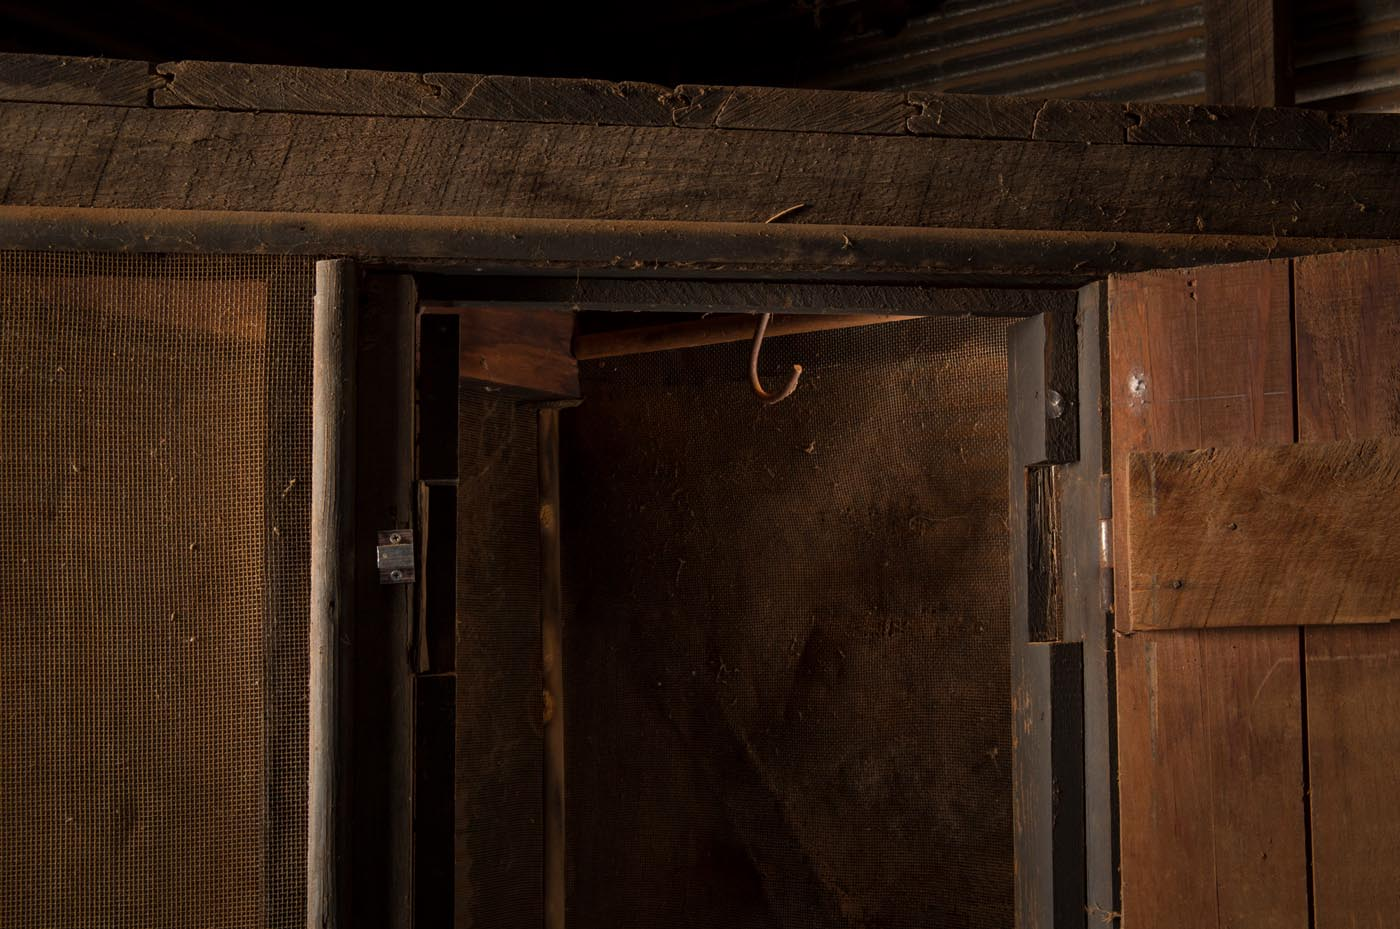 Meat safe with one door open. - click to view larger image